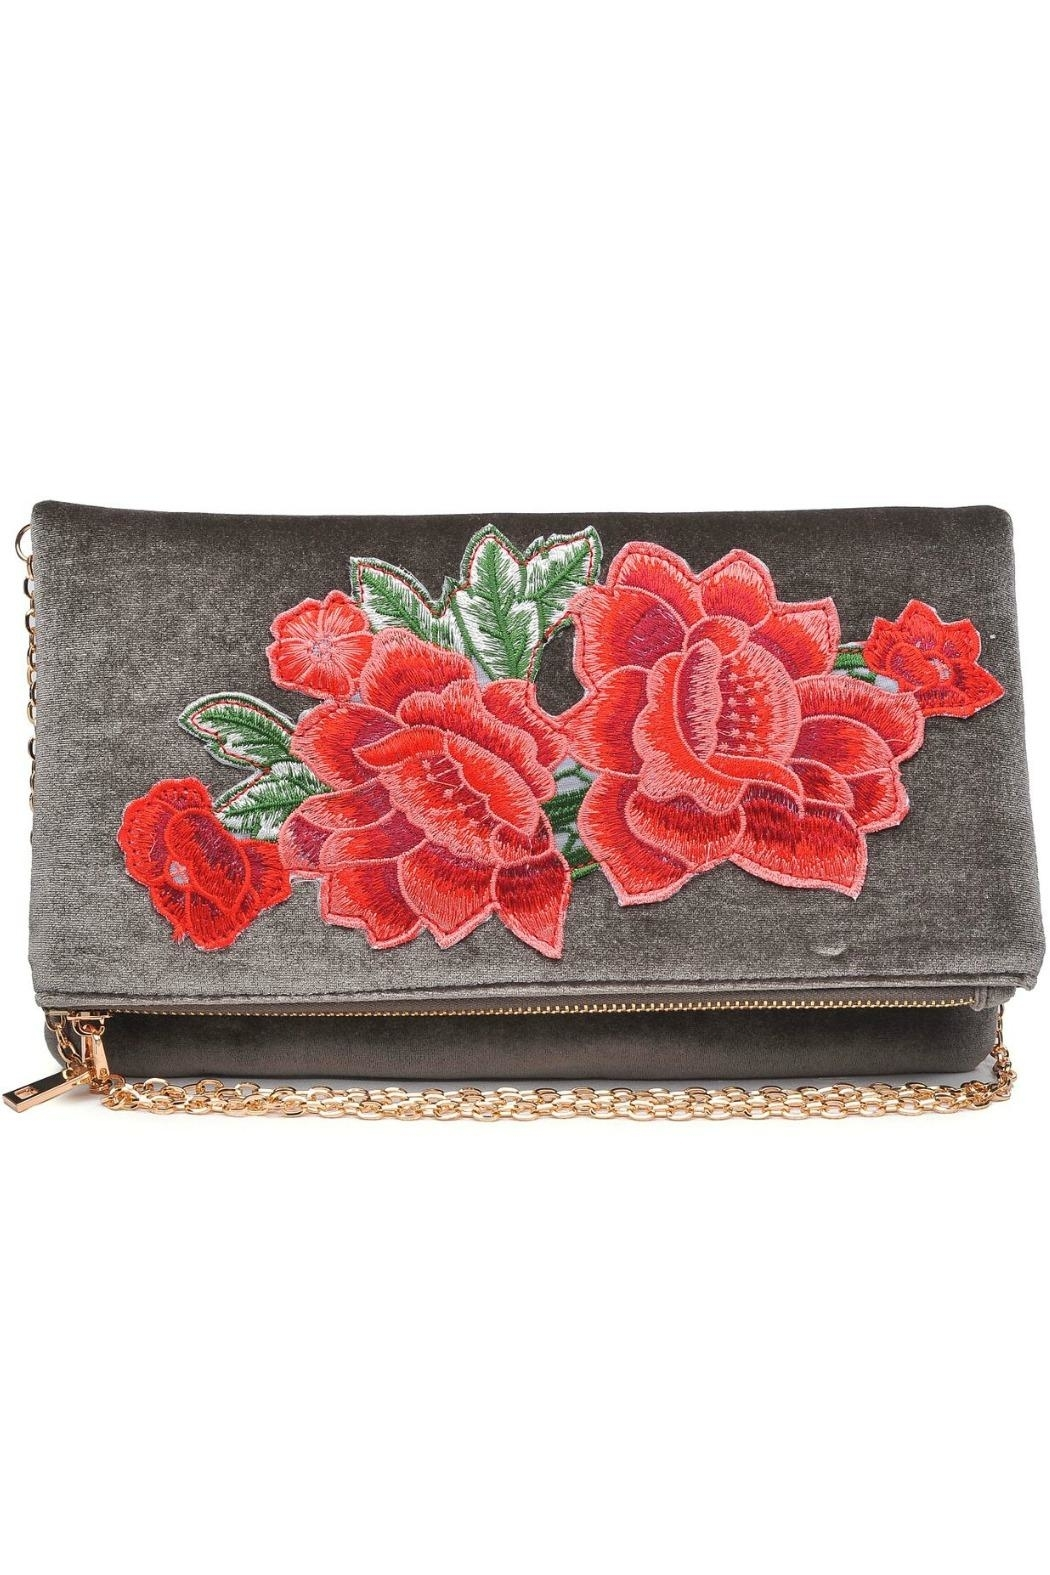 Urban Expressions Velvet Embroidered Clutch - Main Image